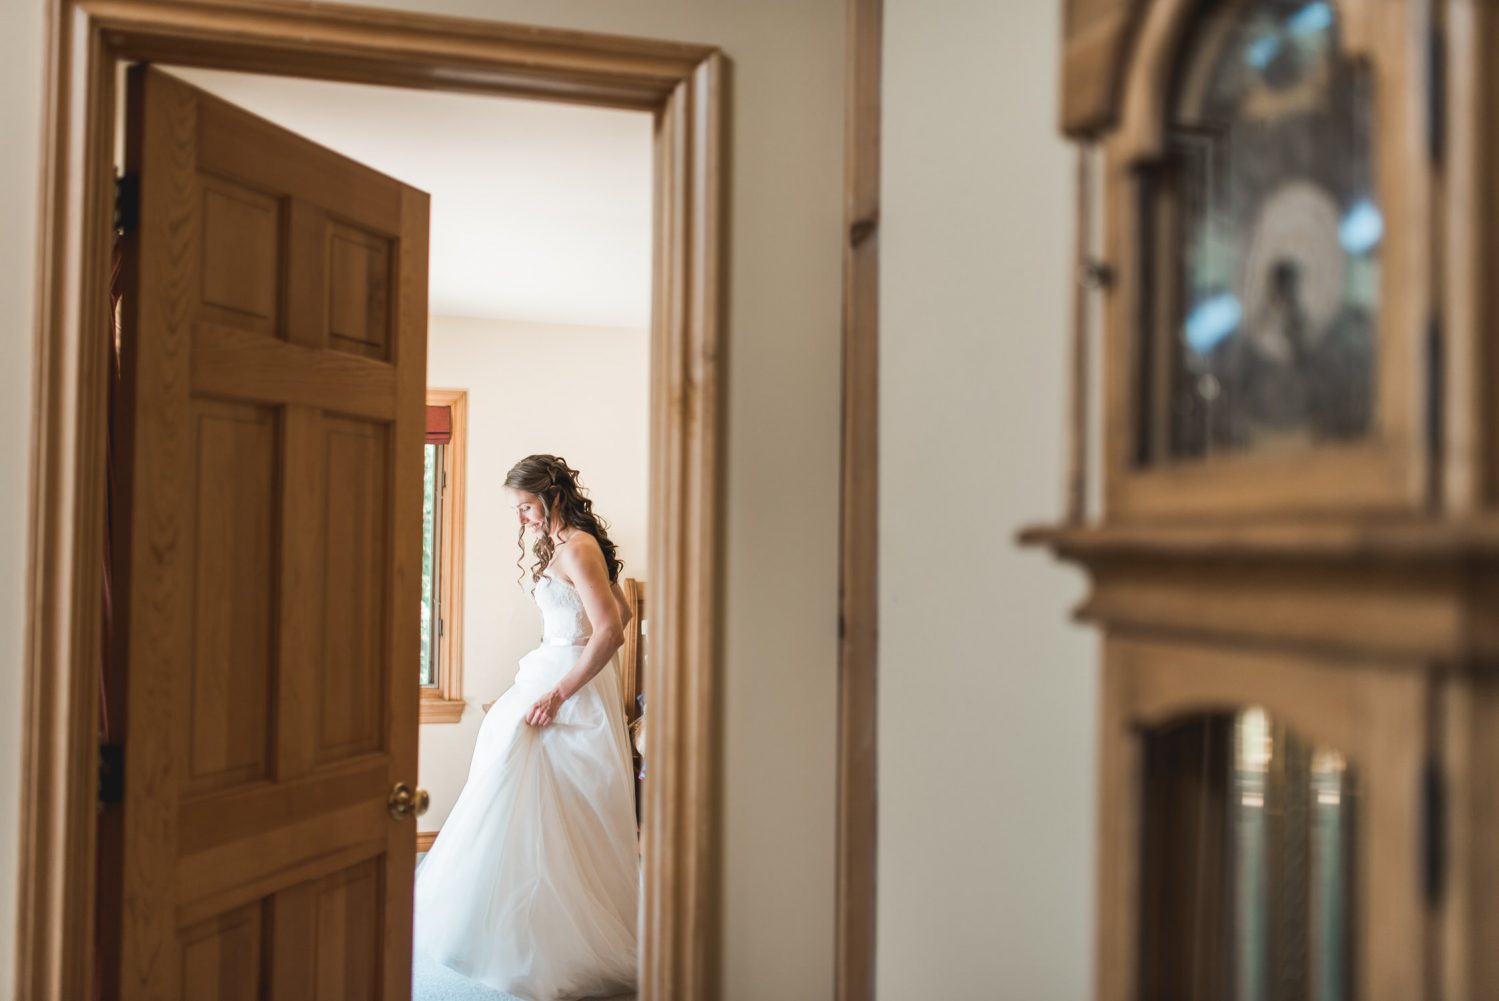 an intimate view through doorway of bride